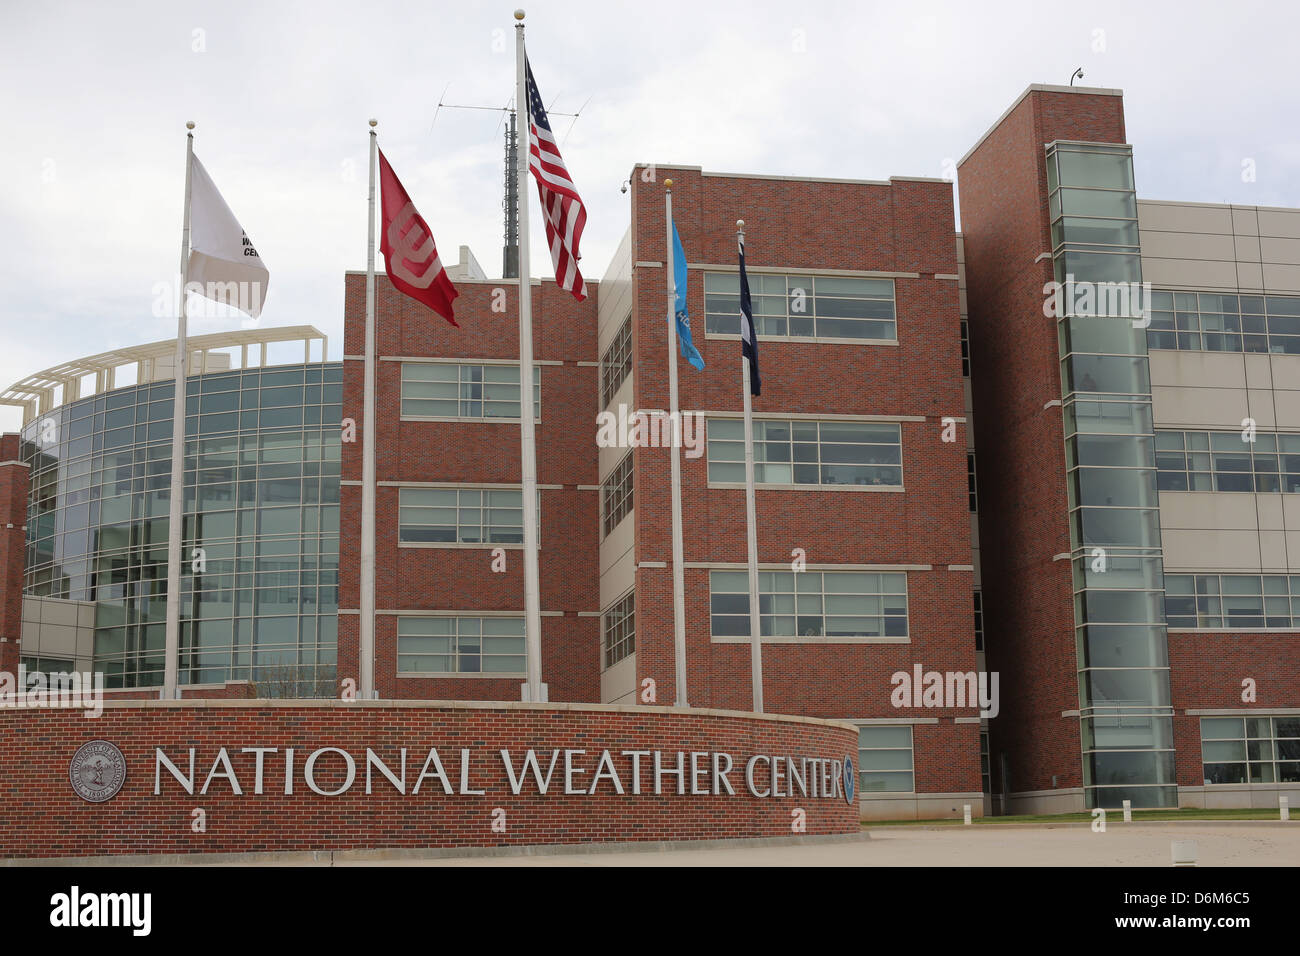 The National Weather Center in Norman, Oklahoma Stock Photo